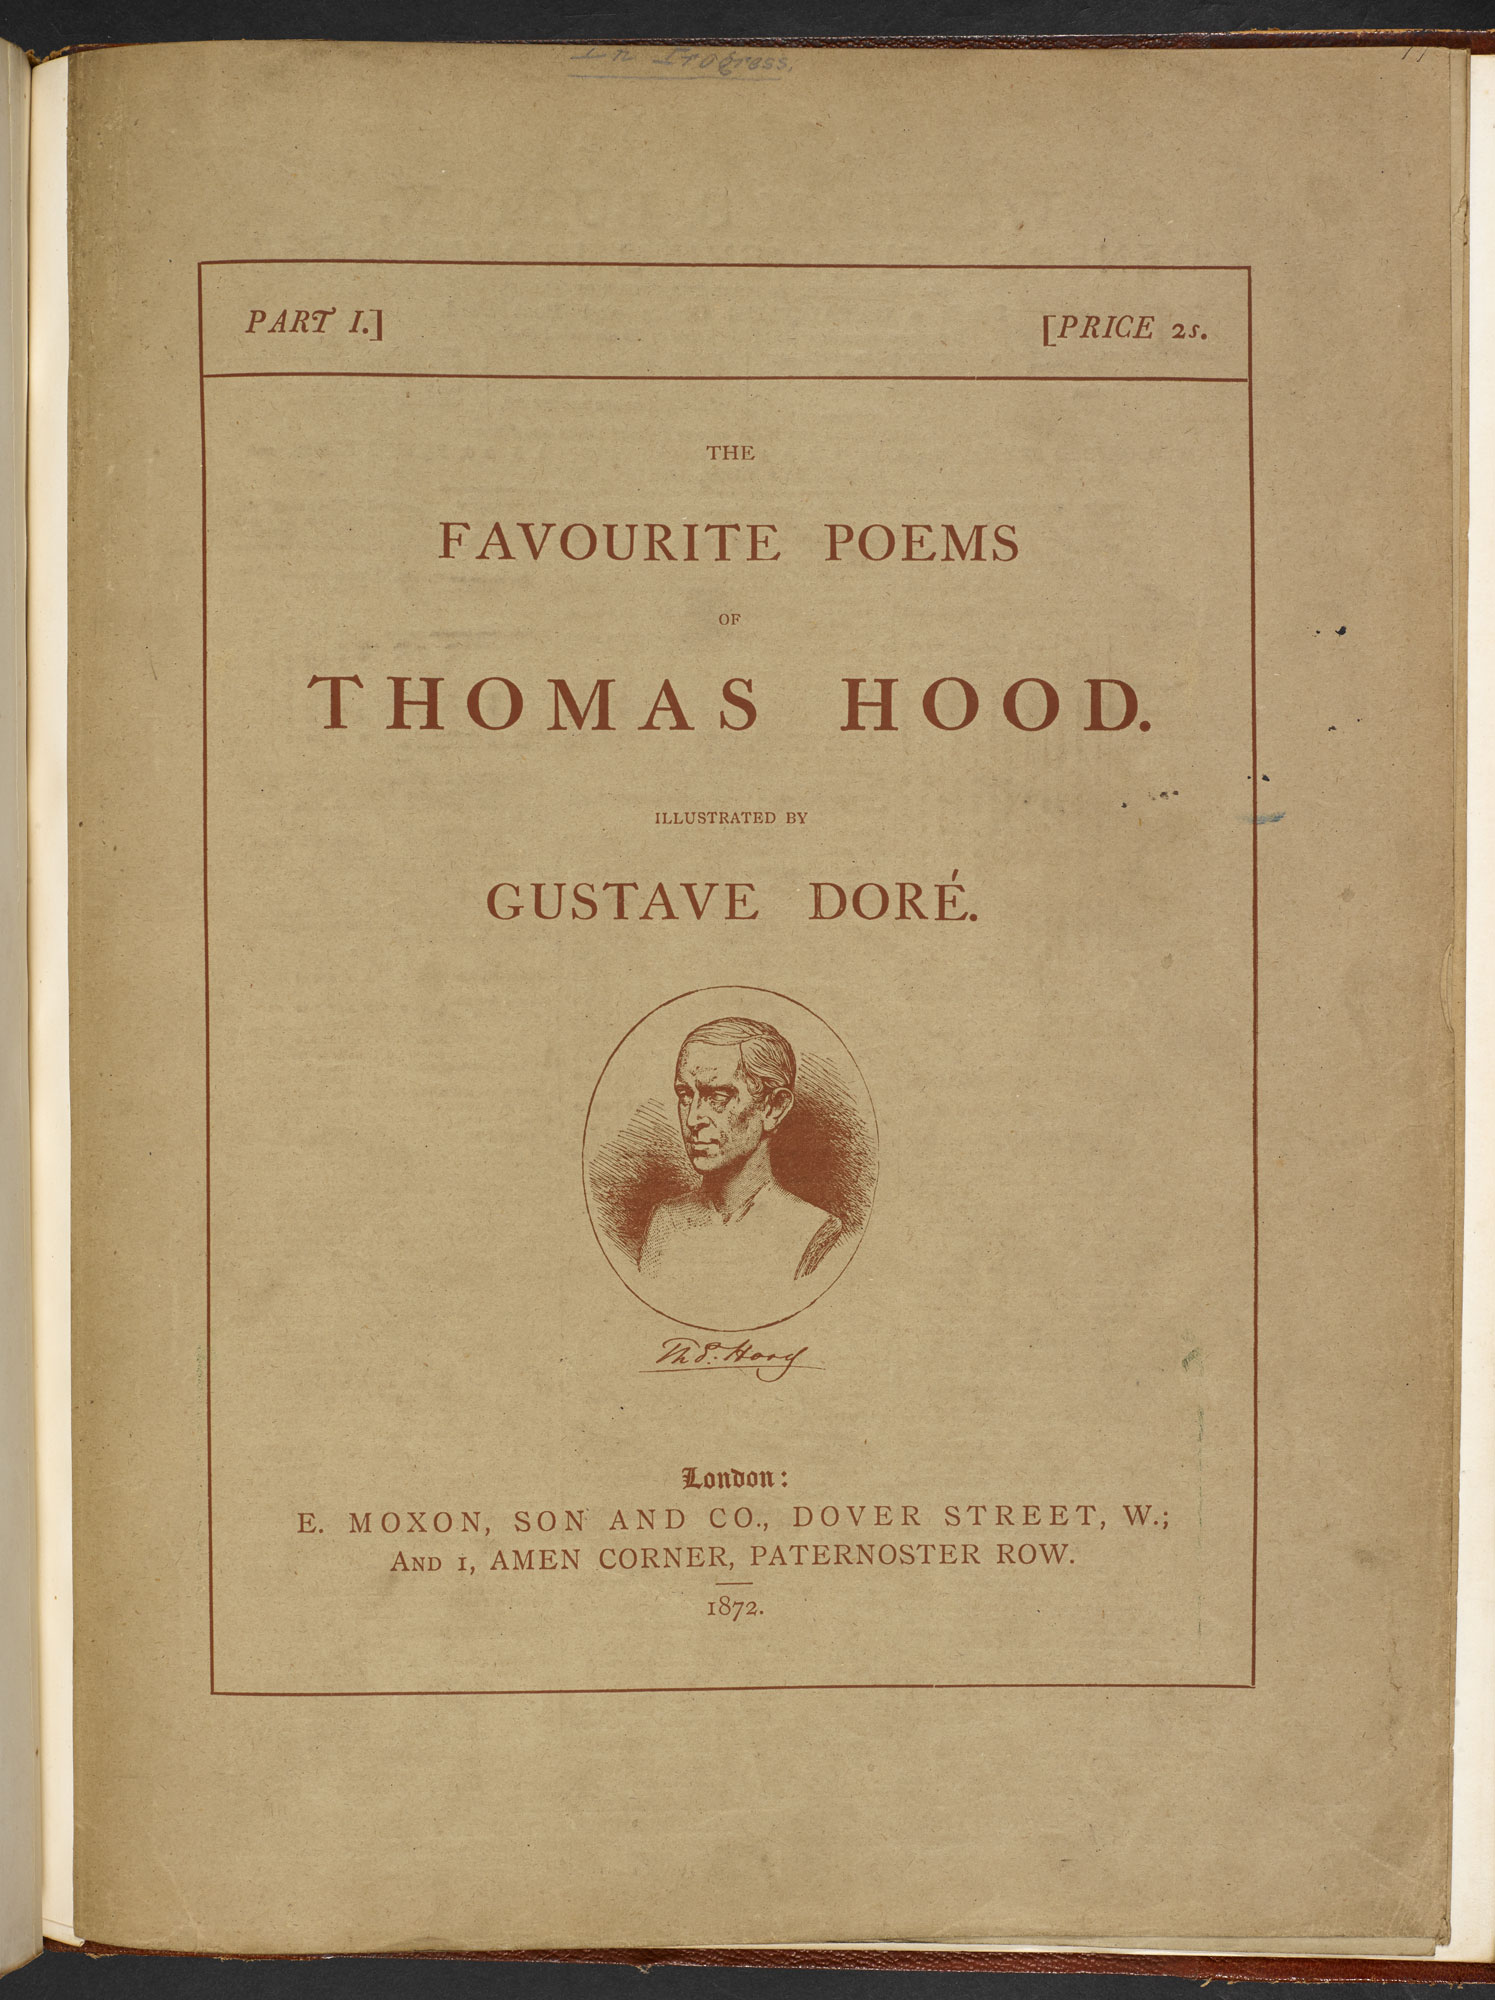 The Favourite Poems of Thomas Hood, with illustrations by